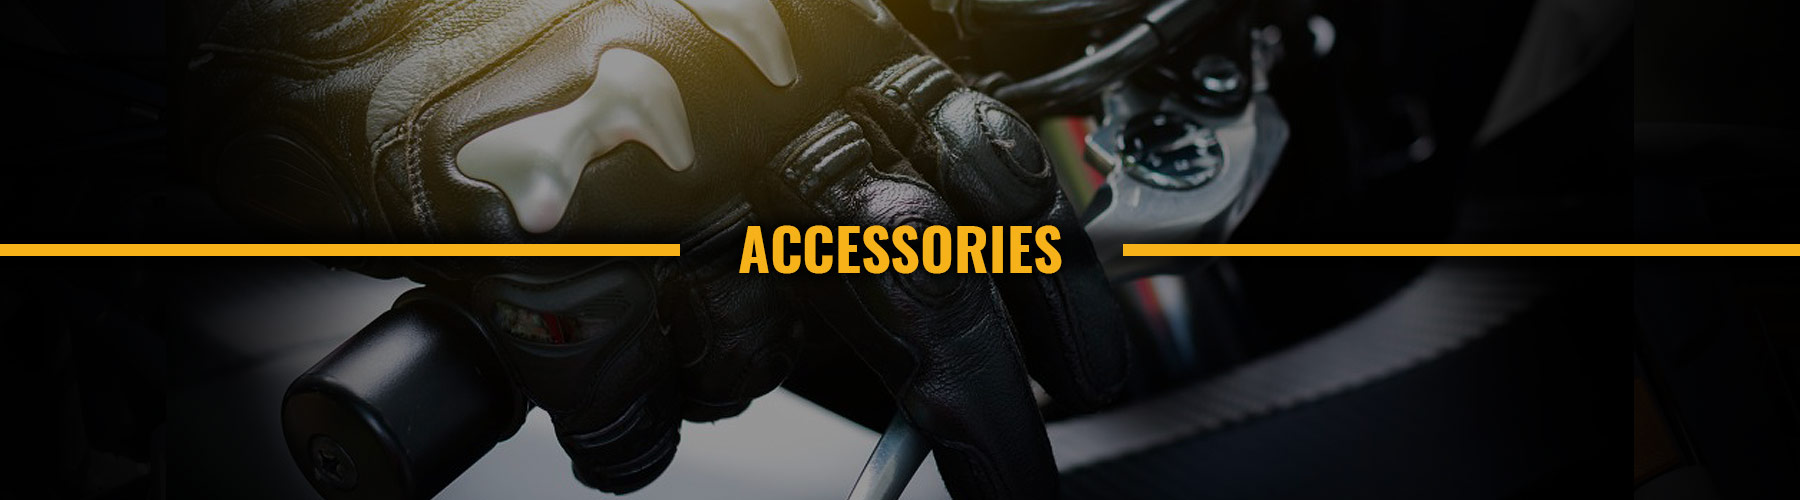 Twisted Trails - Accessories